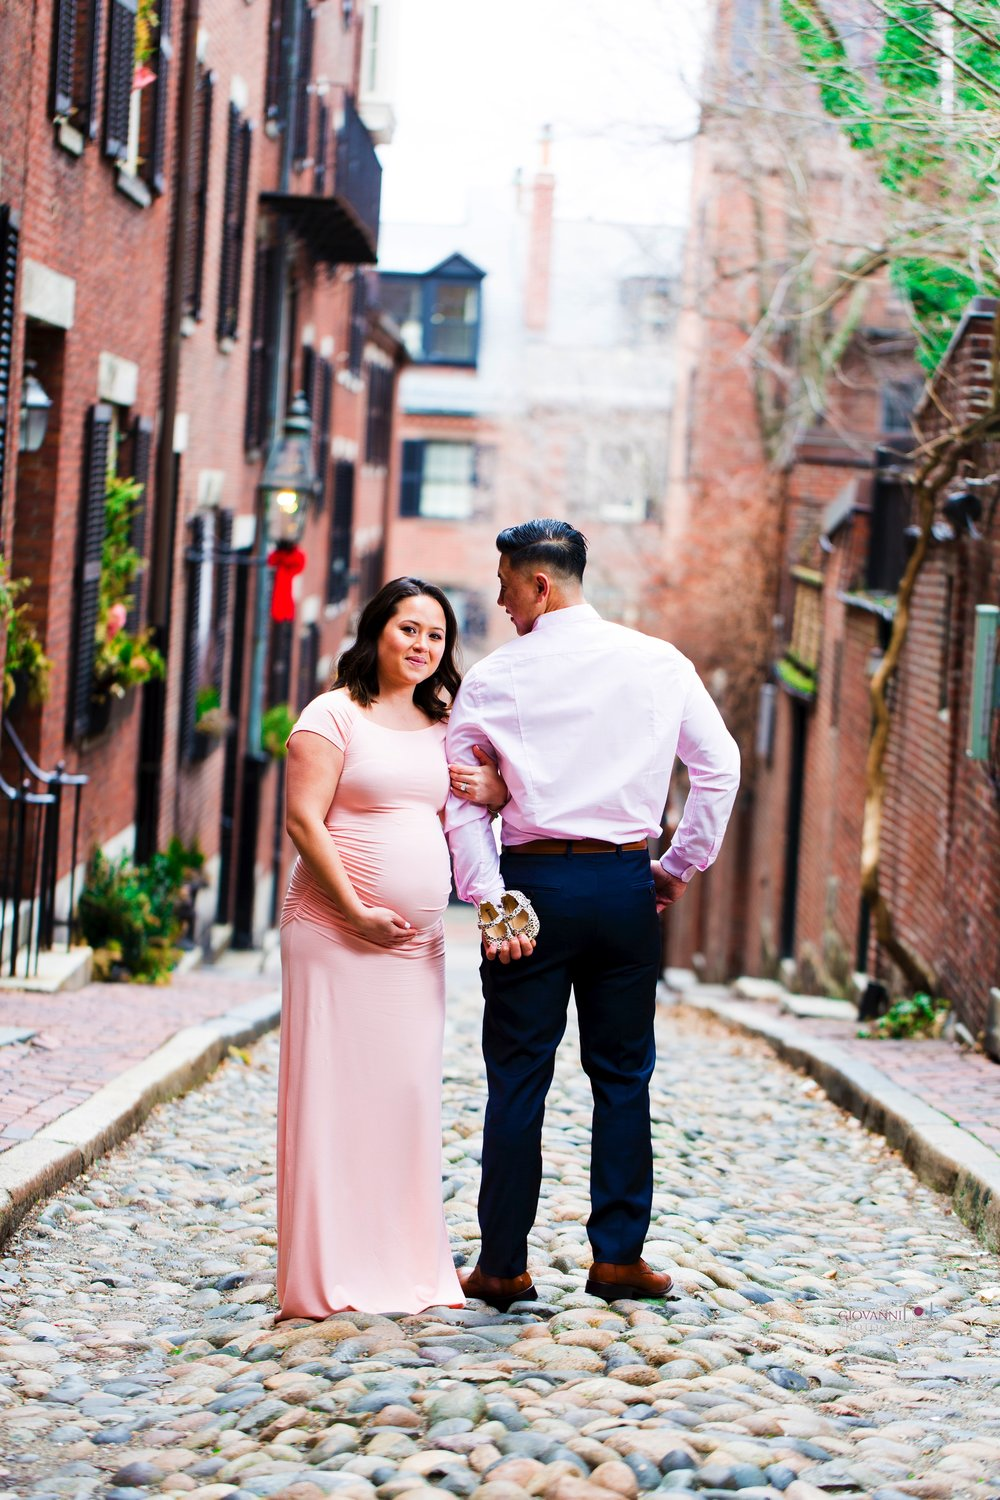 8C2A2552 Giovanni The Photographer Boston Marternity Photography Maryann and Steven - Beacon Hill - Acorn Street Cobblestone St 03-04-18 WM35.jpg